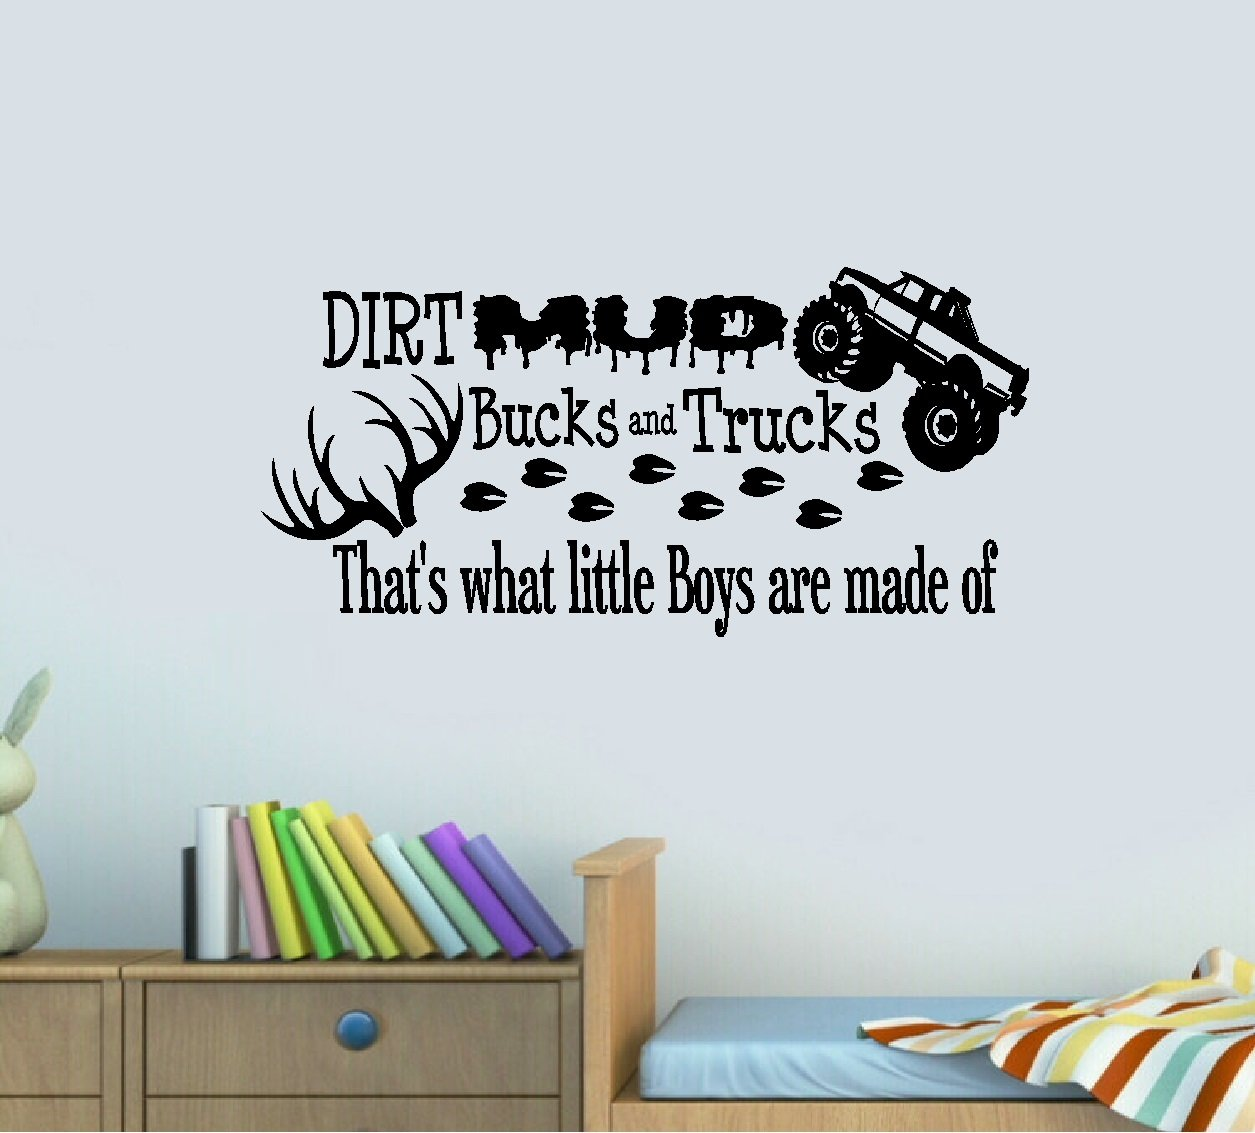 Amazon dirt mud bucks and trucks thats what little boys amazon dirt mud bucks and trucks thats what little boys are made of wall decal 13 x 28 home kitchen amipublicfo Images